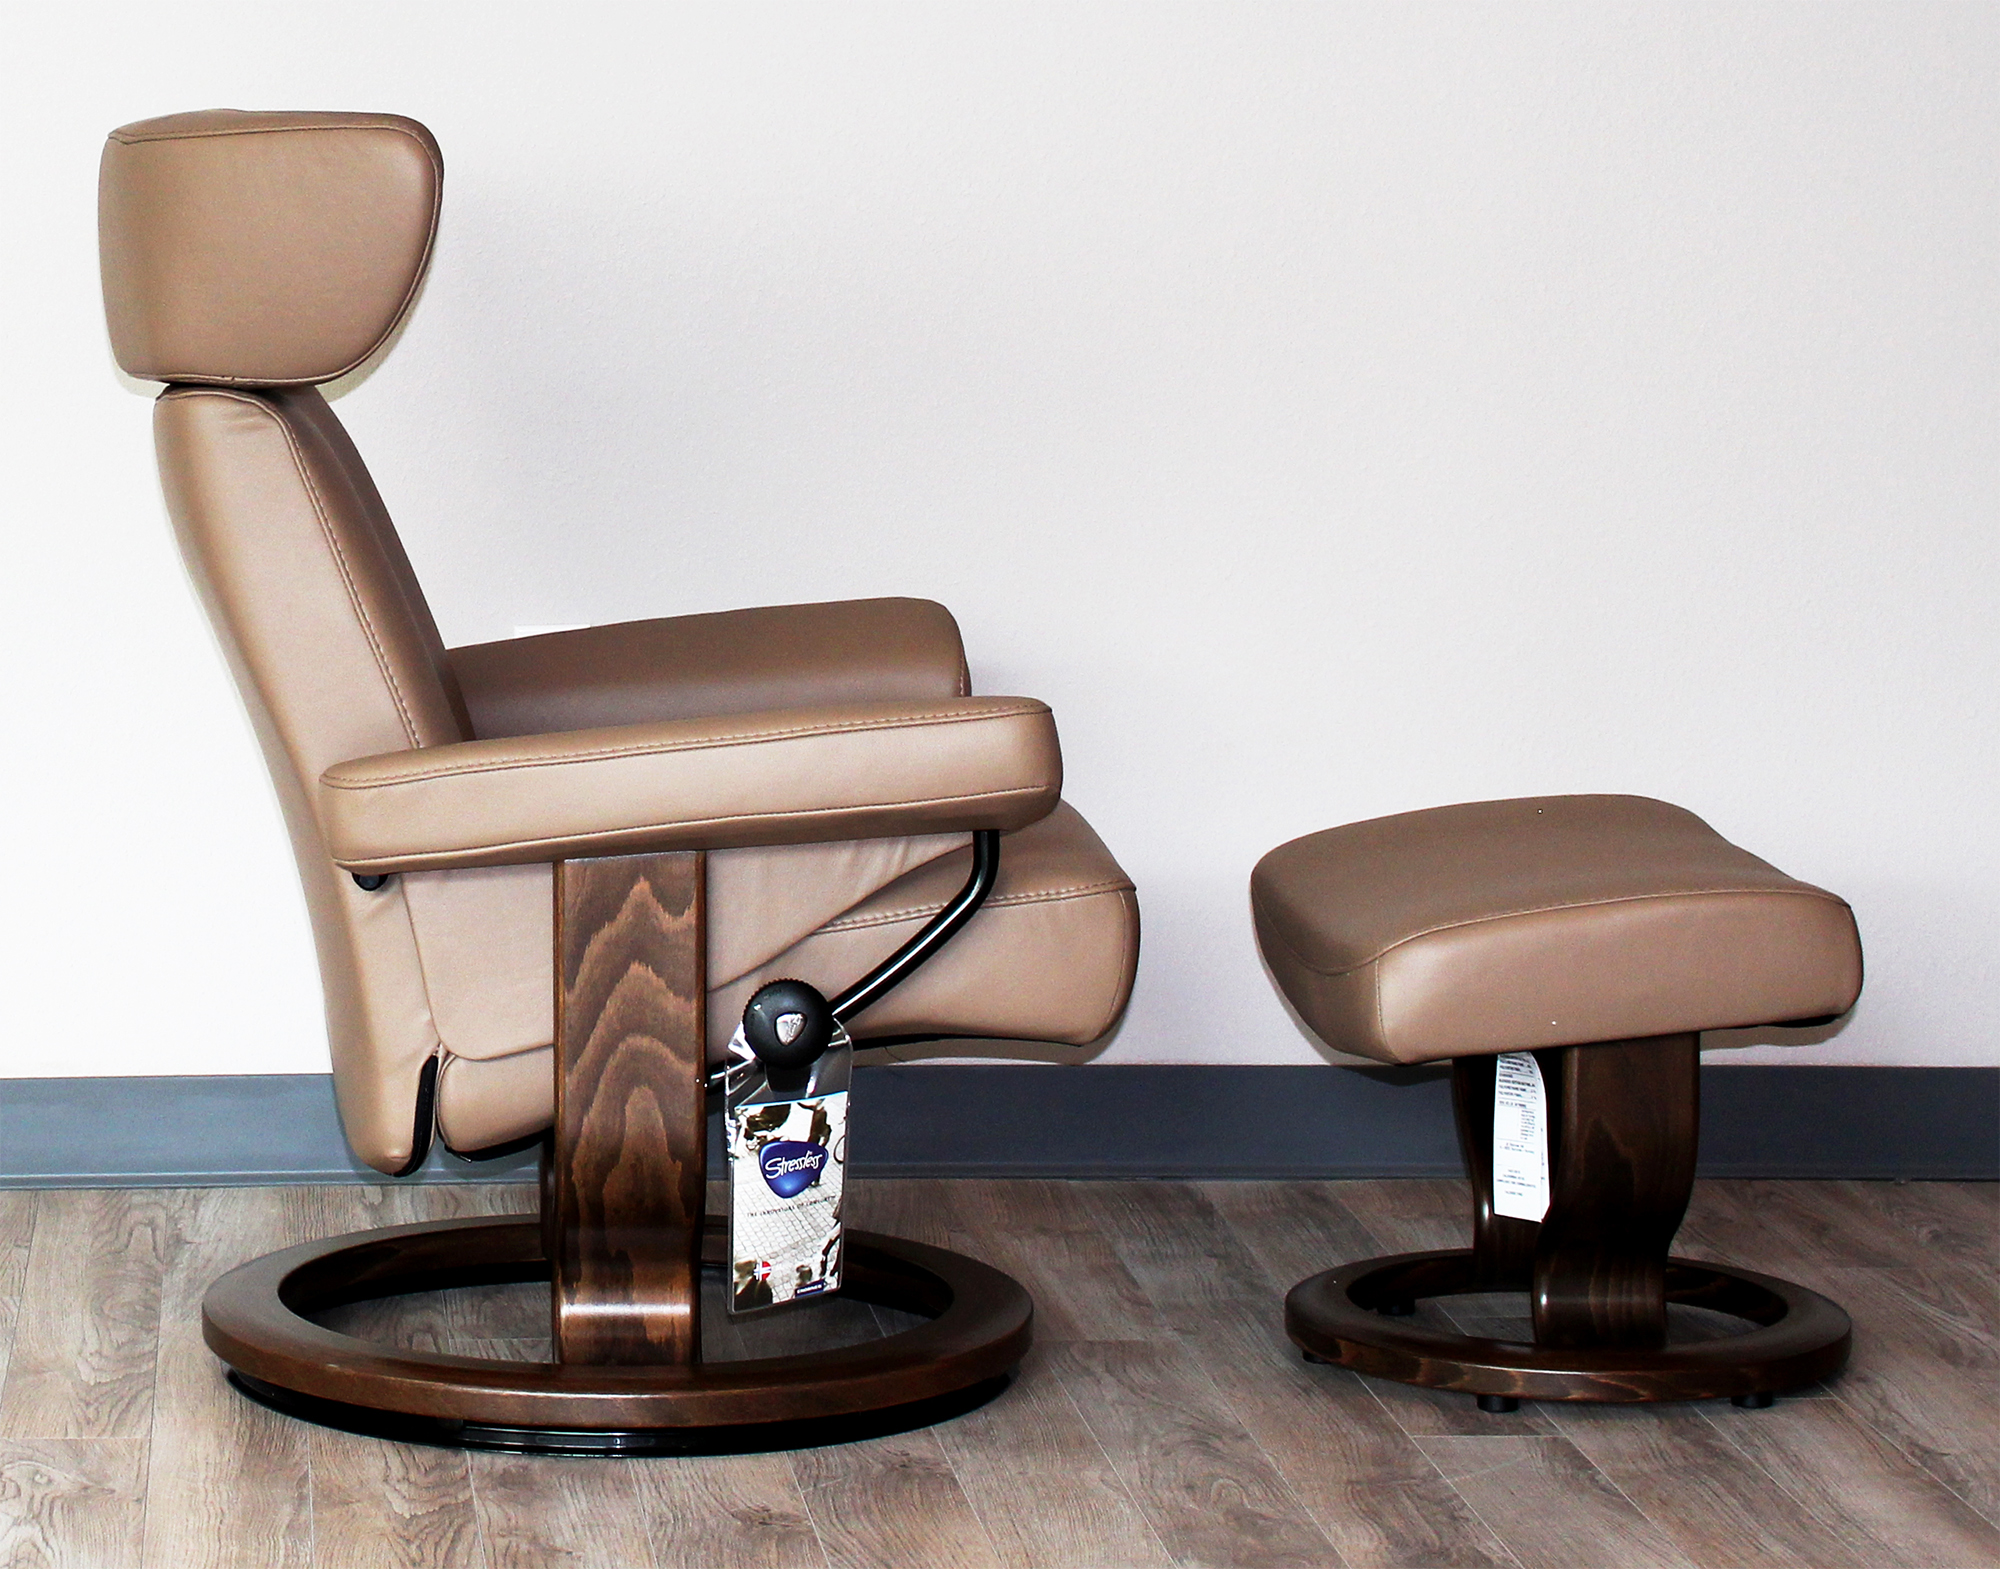 Stressless Viva Paloma Funghi Leather Recliner Chair And Ottoman By Ekornes